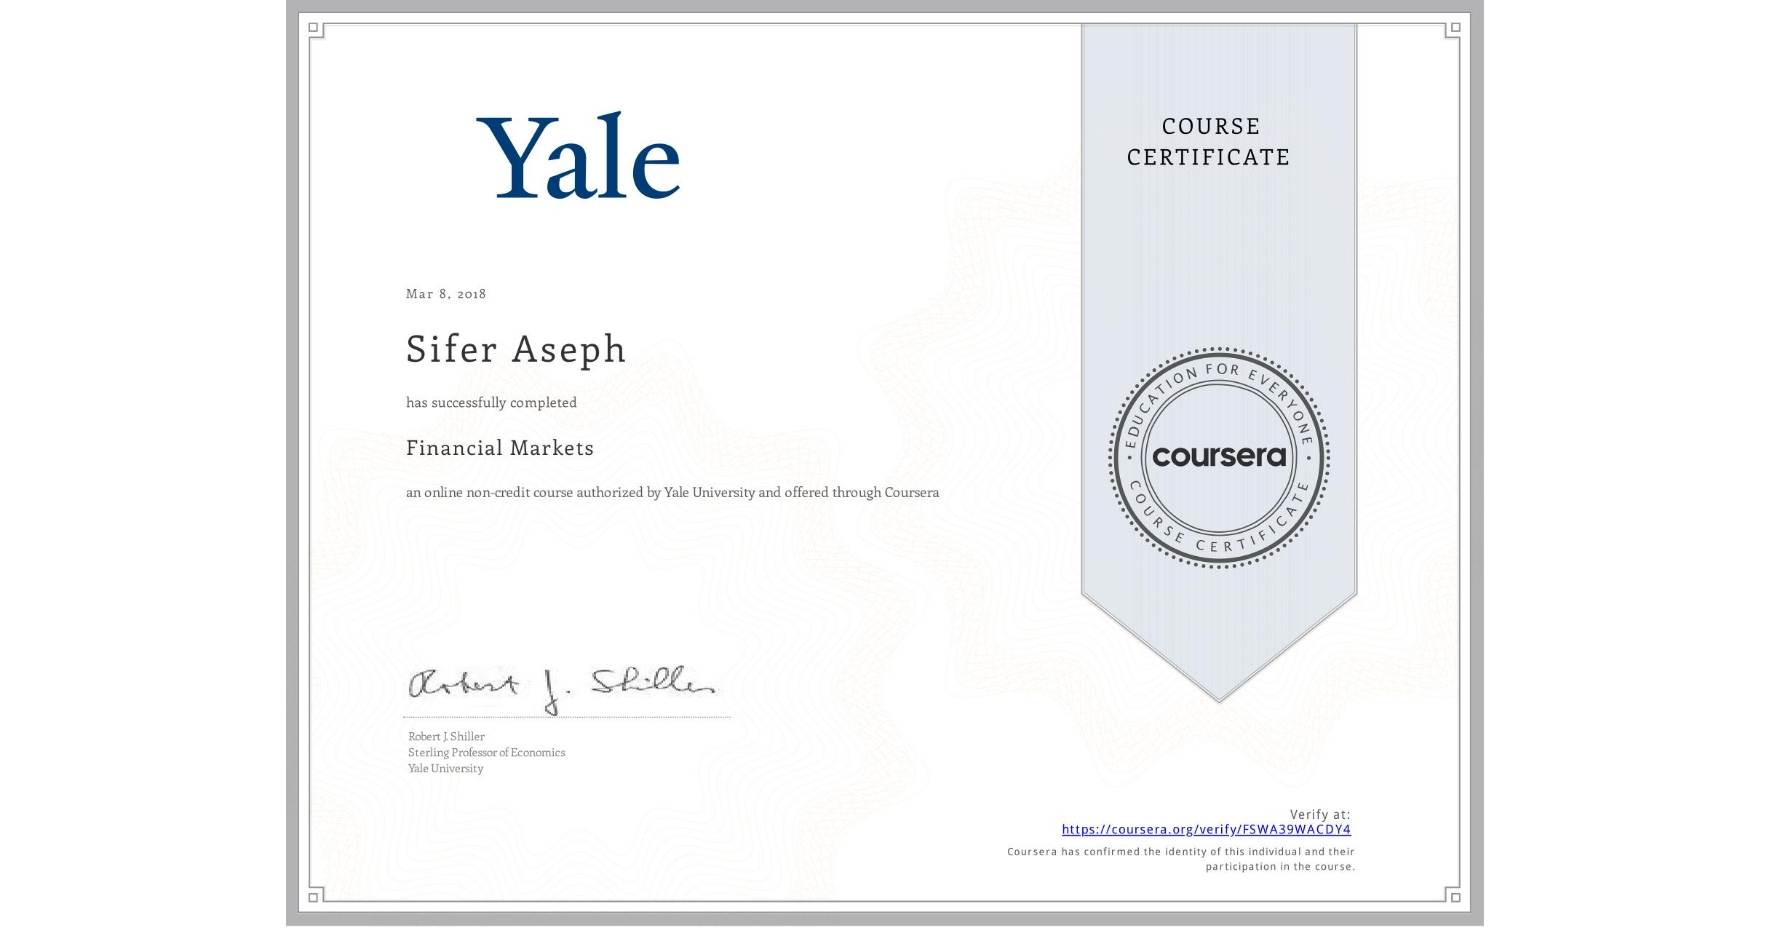 View certificate for Sifer Aseph, Financial Markets, an online non-credit course authorized by Yale University and offered through Coursera